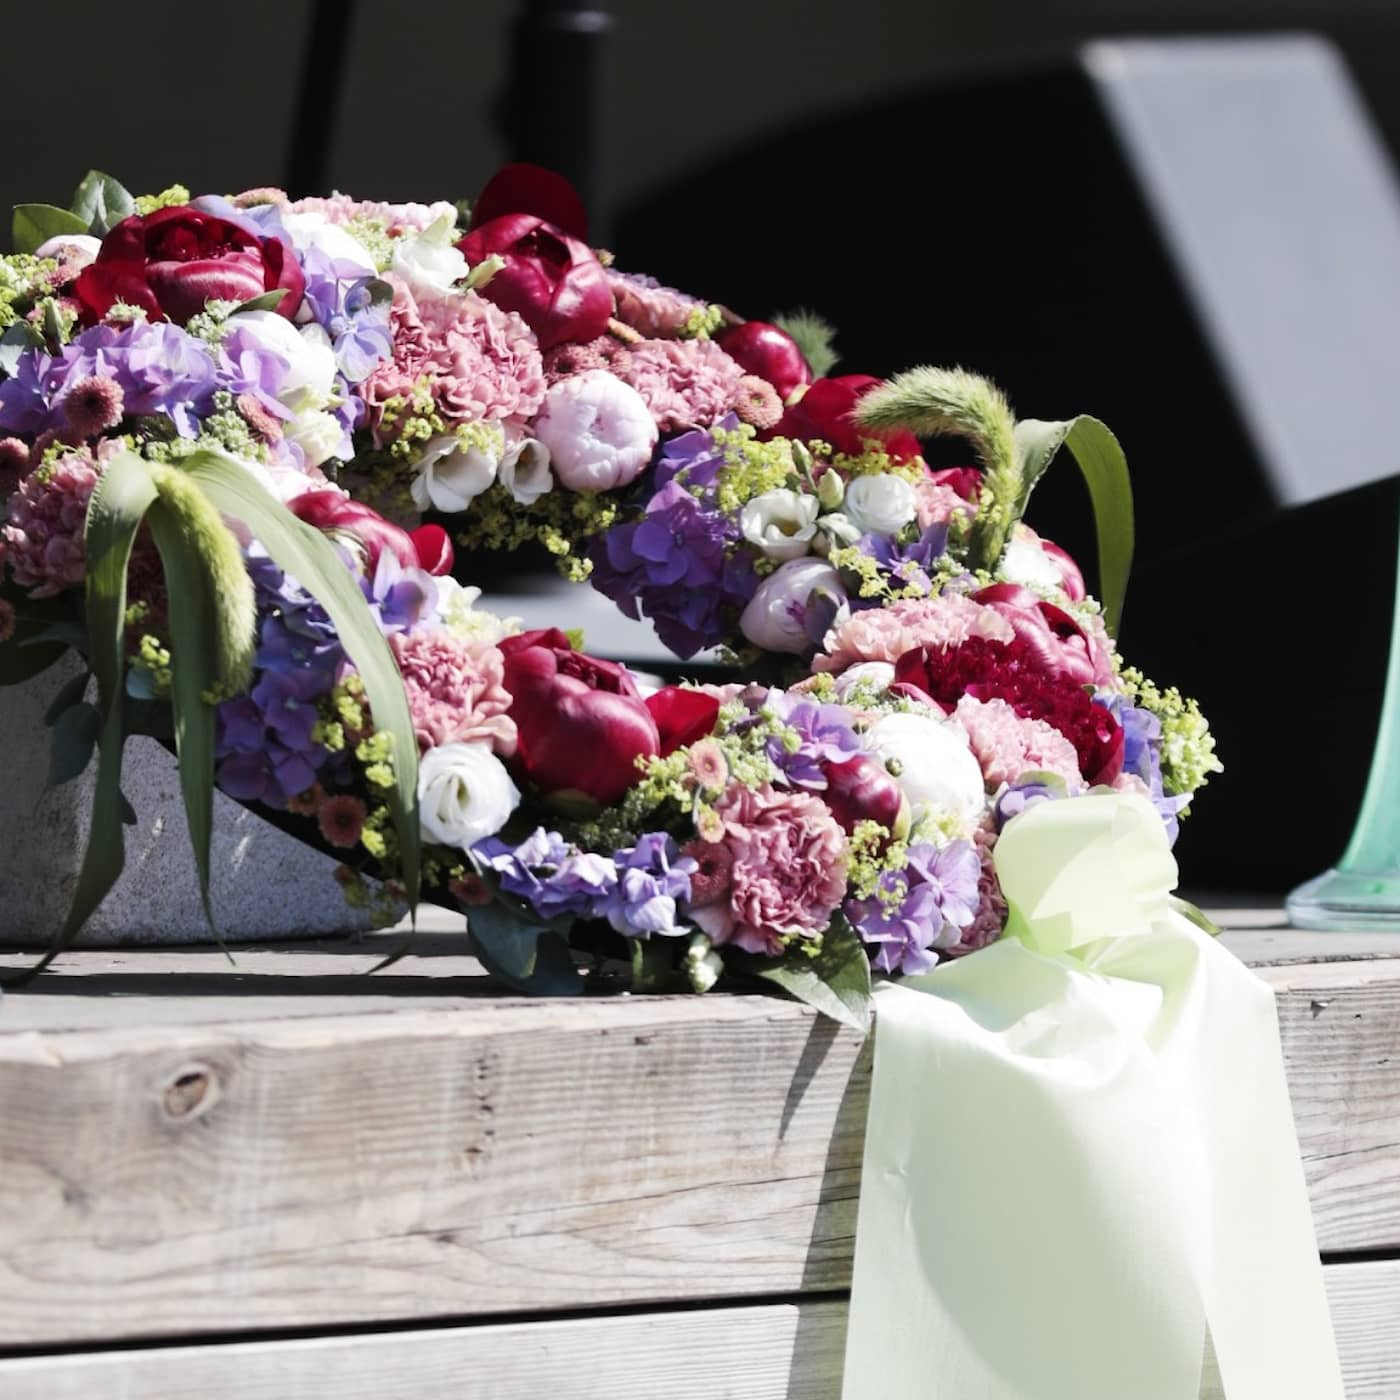 Lack of cement supplies, updates on Estonia disaster, memorial service for plane crash victims